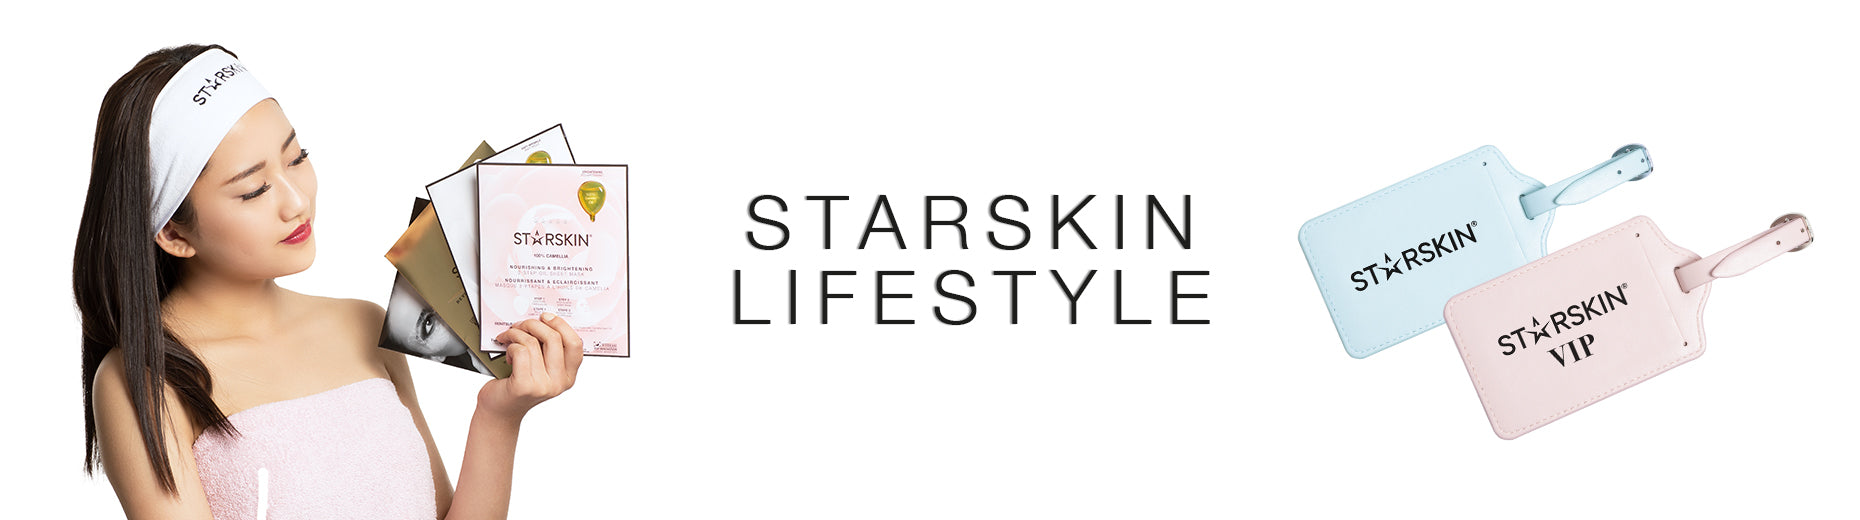 banner lifestyle showing model with starskin hairband and luggage tags